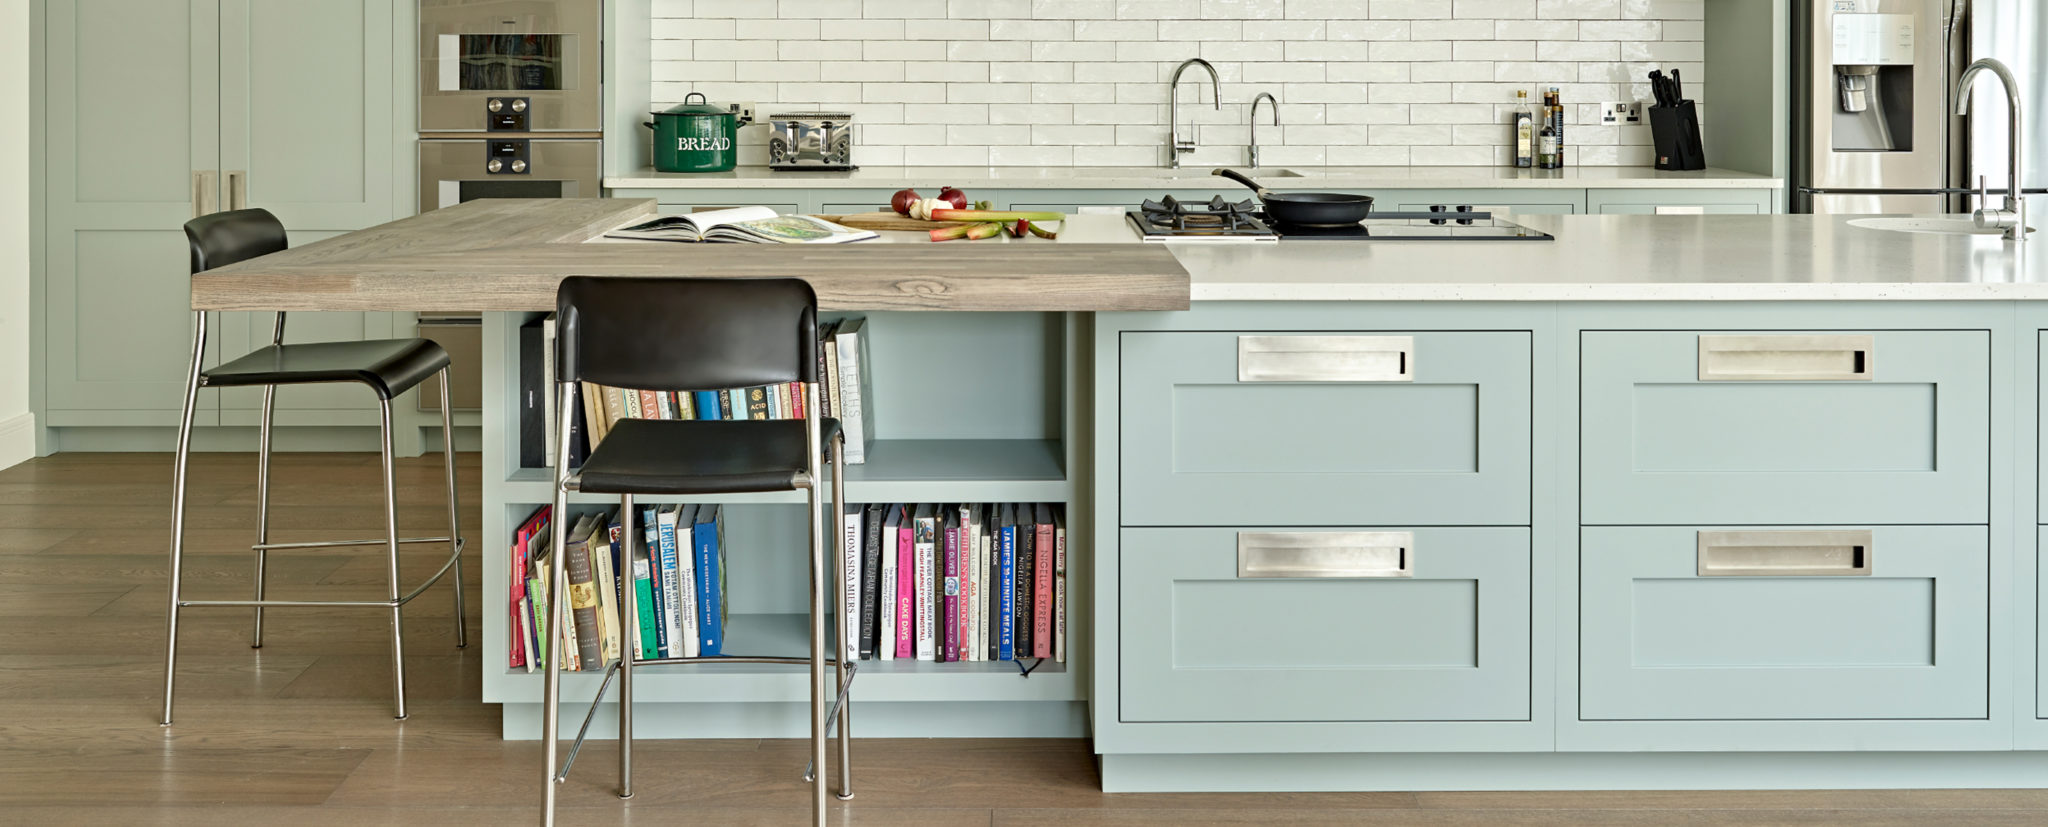 Pale Green Kitchen Island with large rectangular handles in brushed stainless steel with built in bookcase and elevated breakfast bar in Prima Heart Ash.